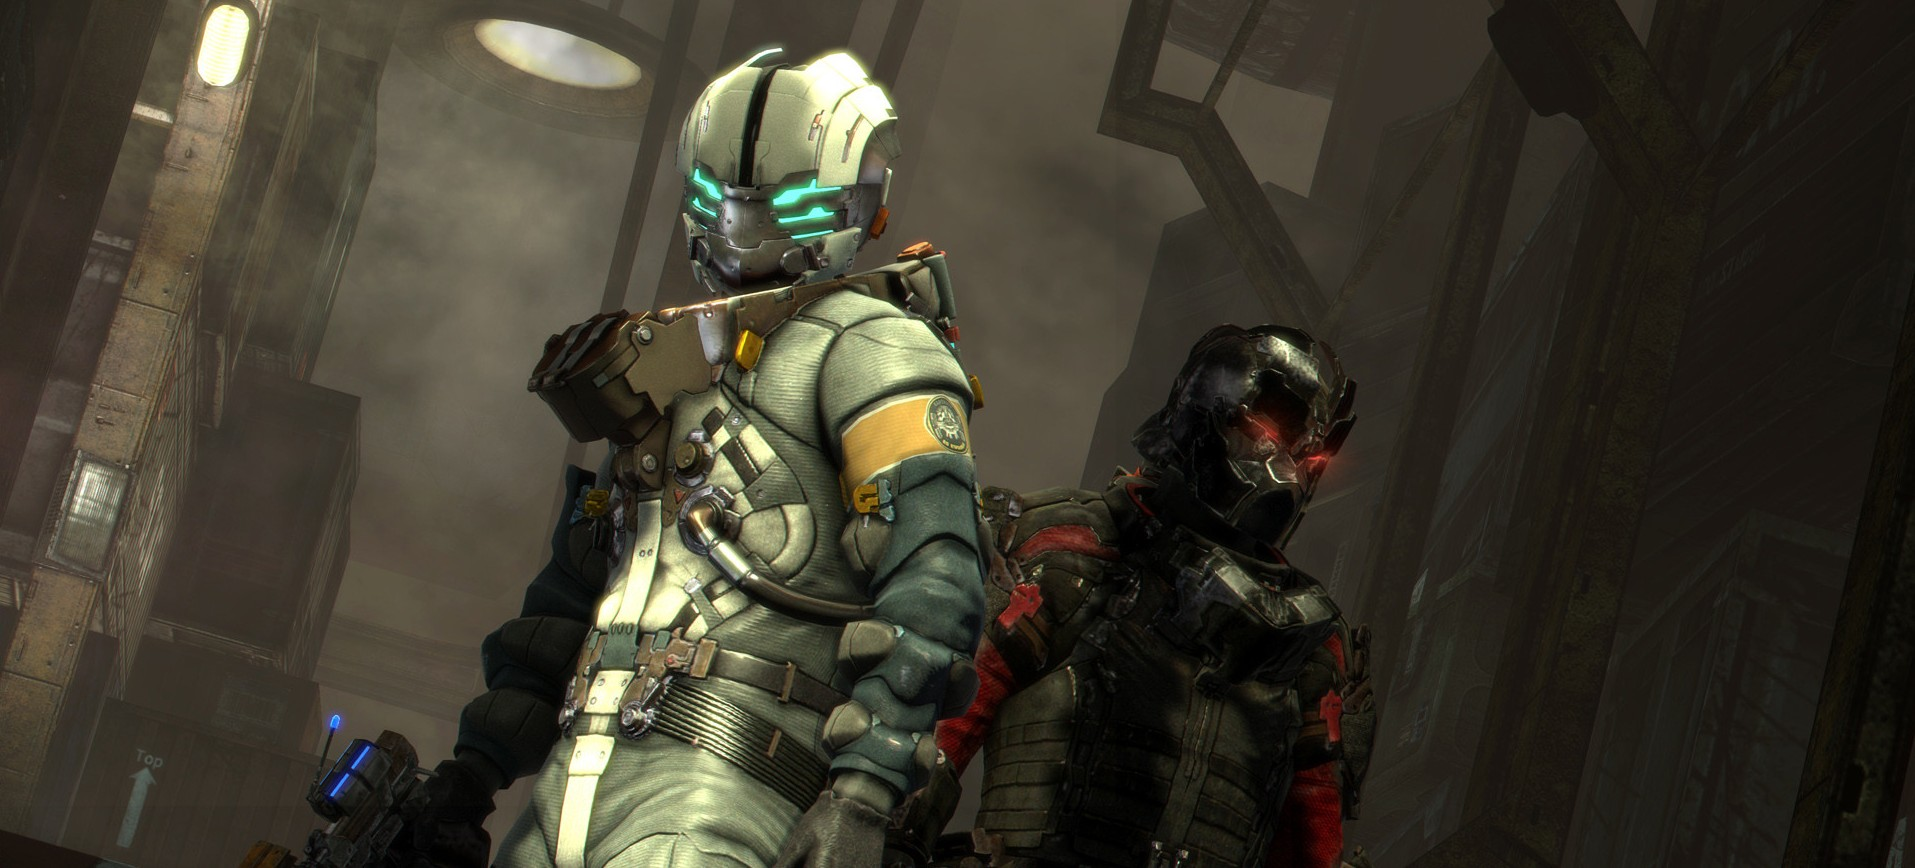 'Dead Space 3' demo early access codes arriving now